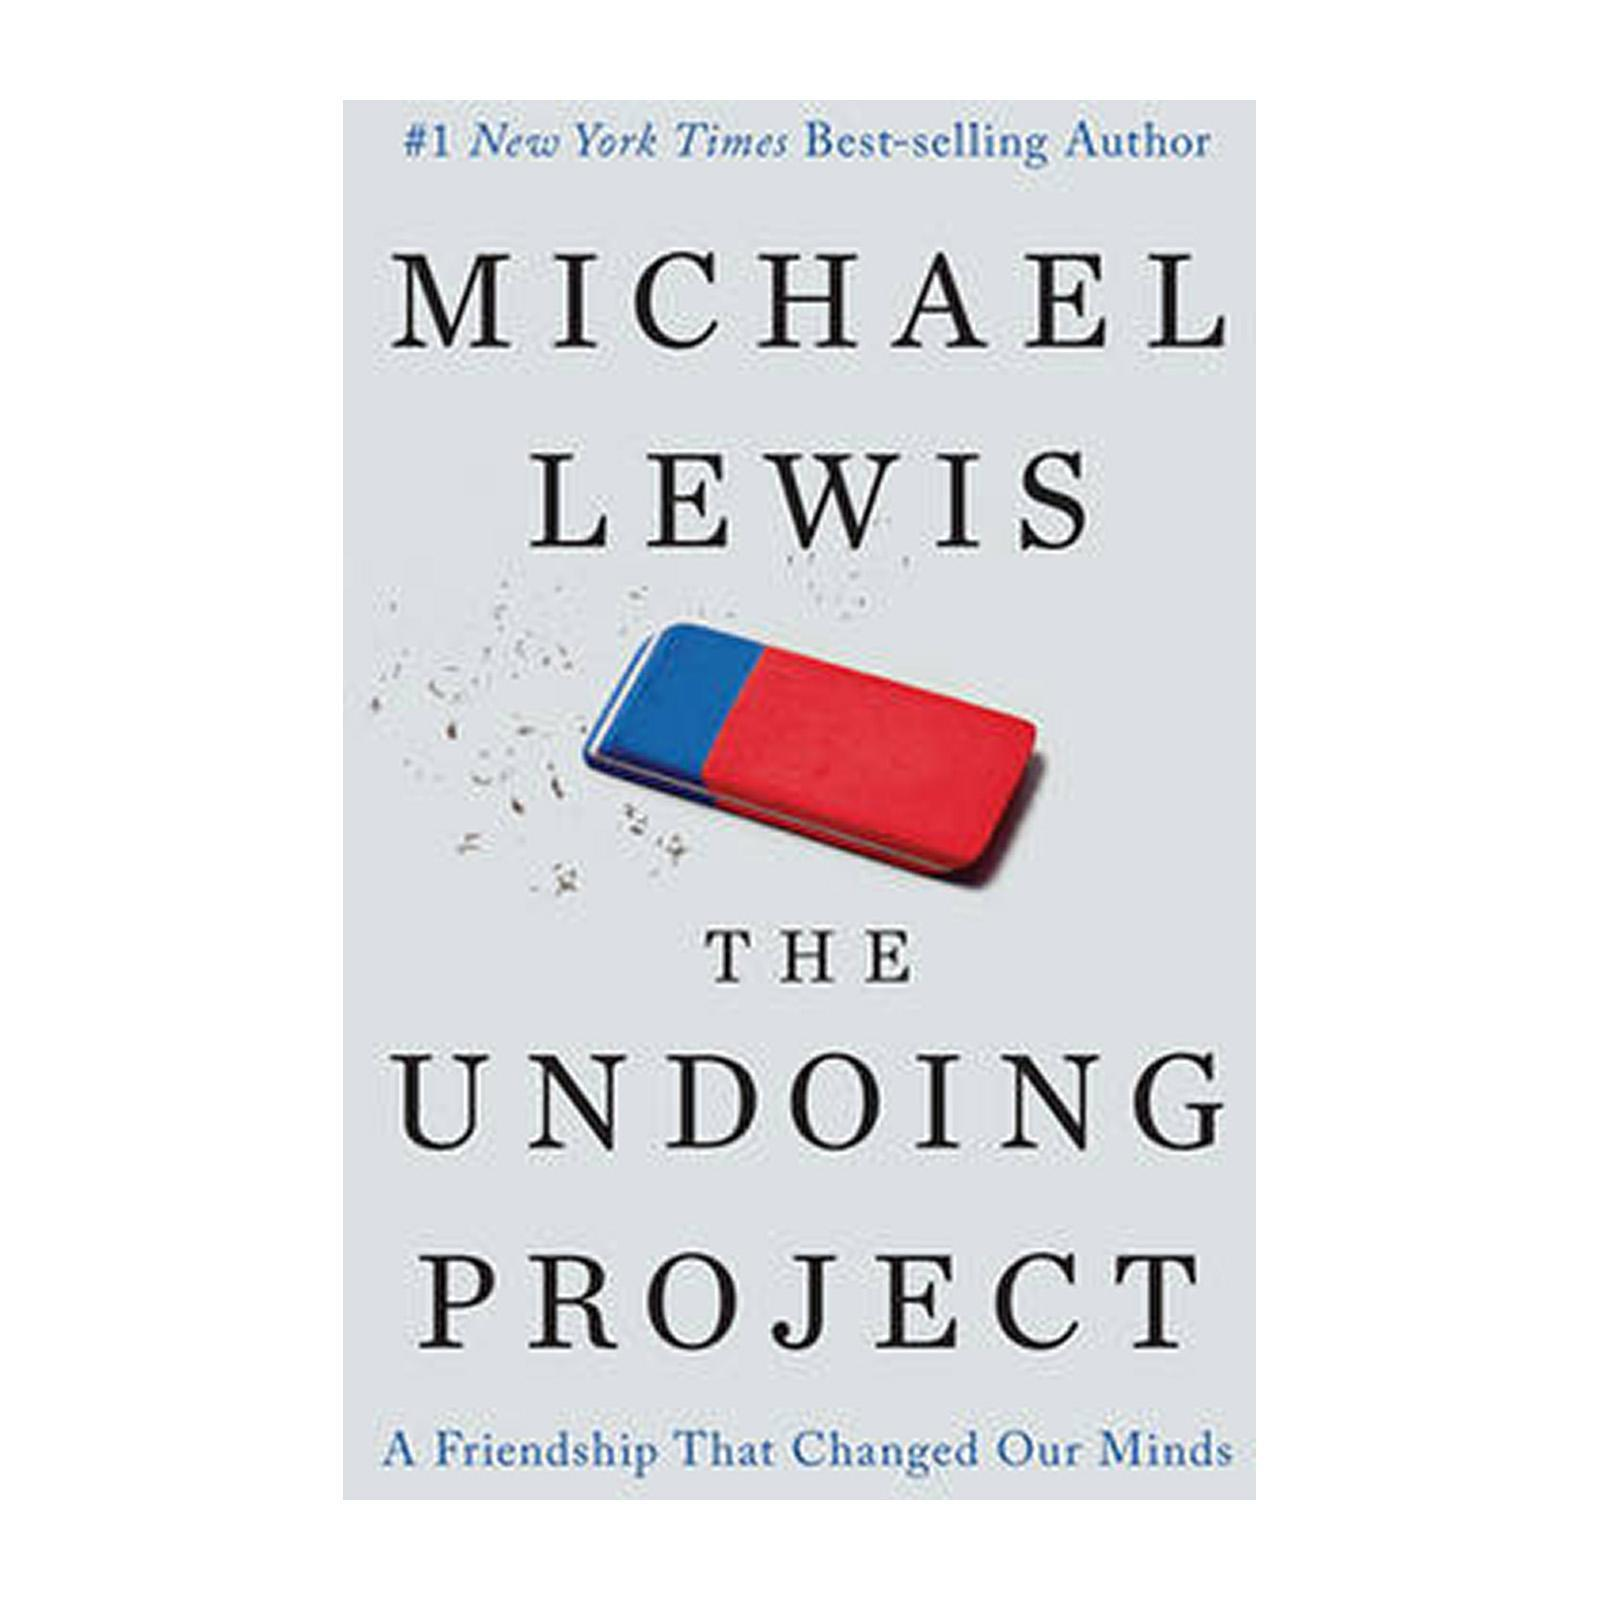 The Undoing Project: A Friendship That Changed Our Minds (Hardcover)